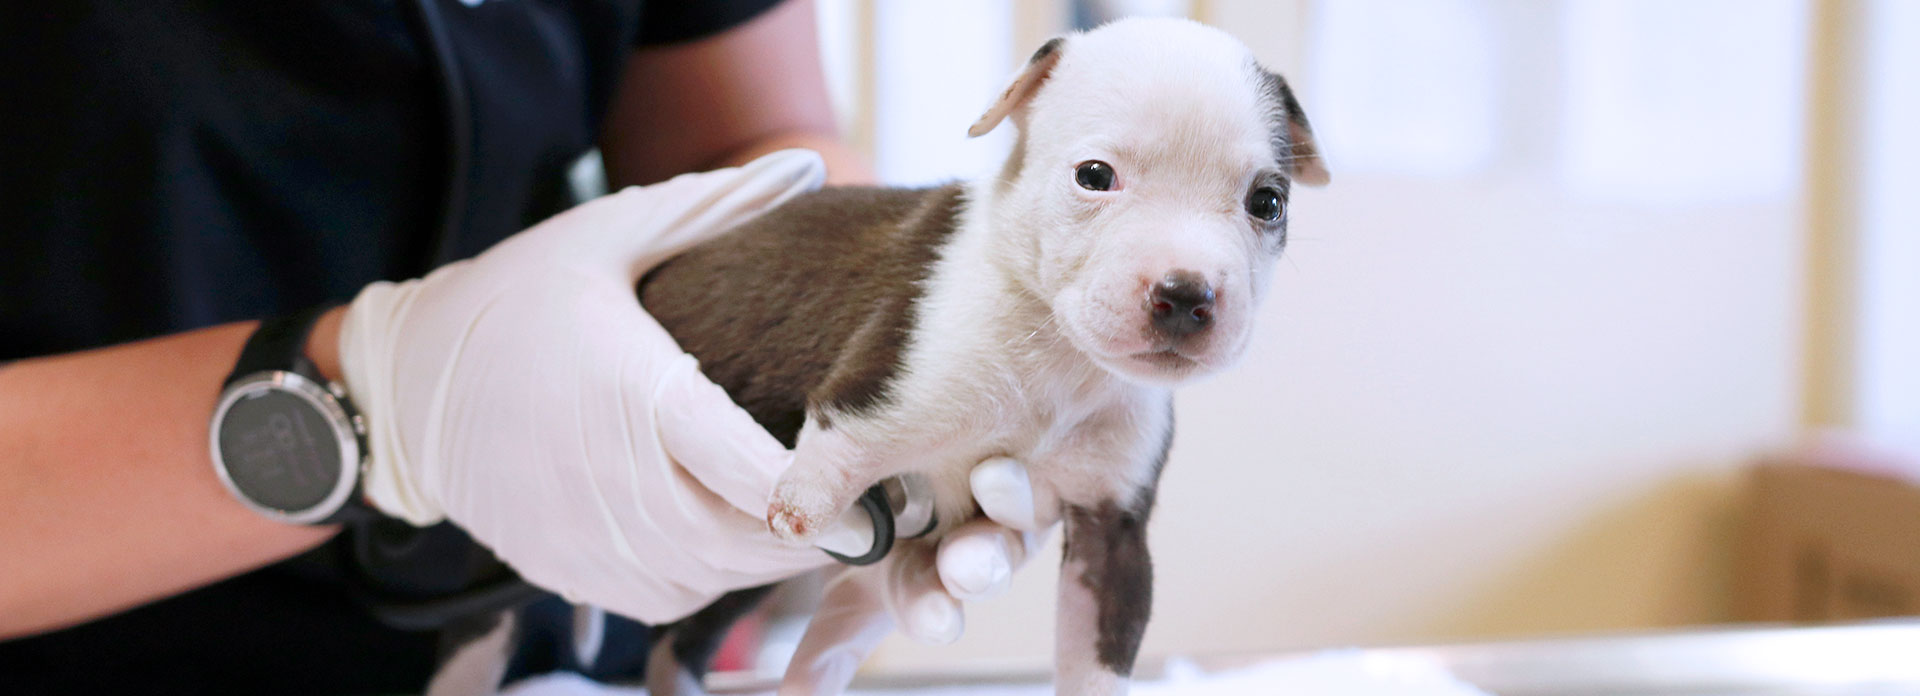 Donate to save animals like this injured puppy being examined by a veterinarian